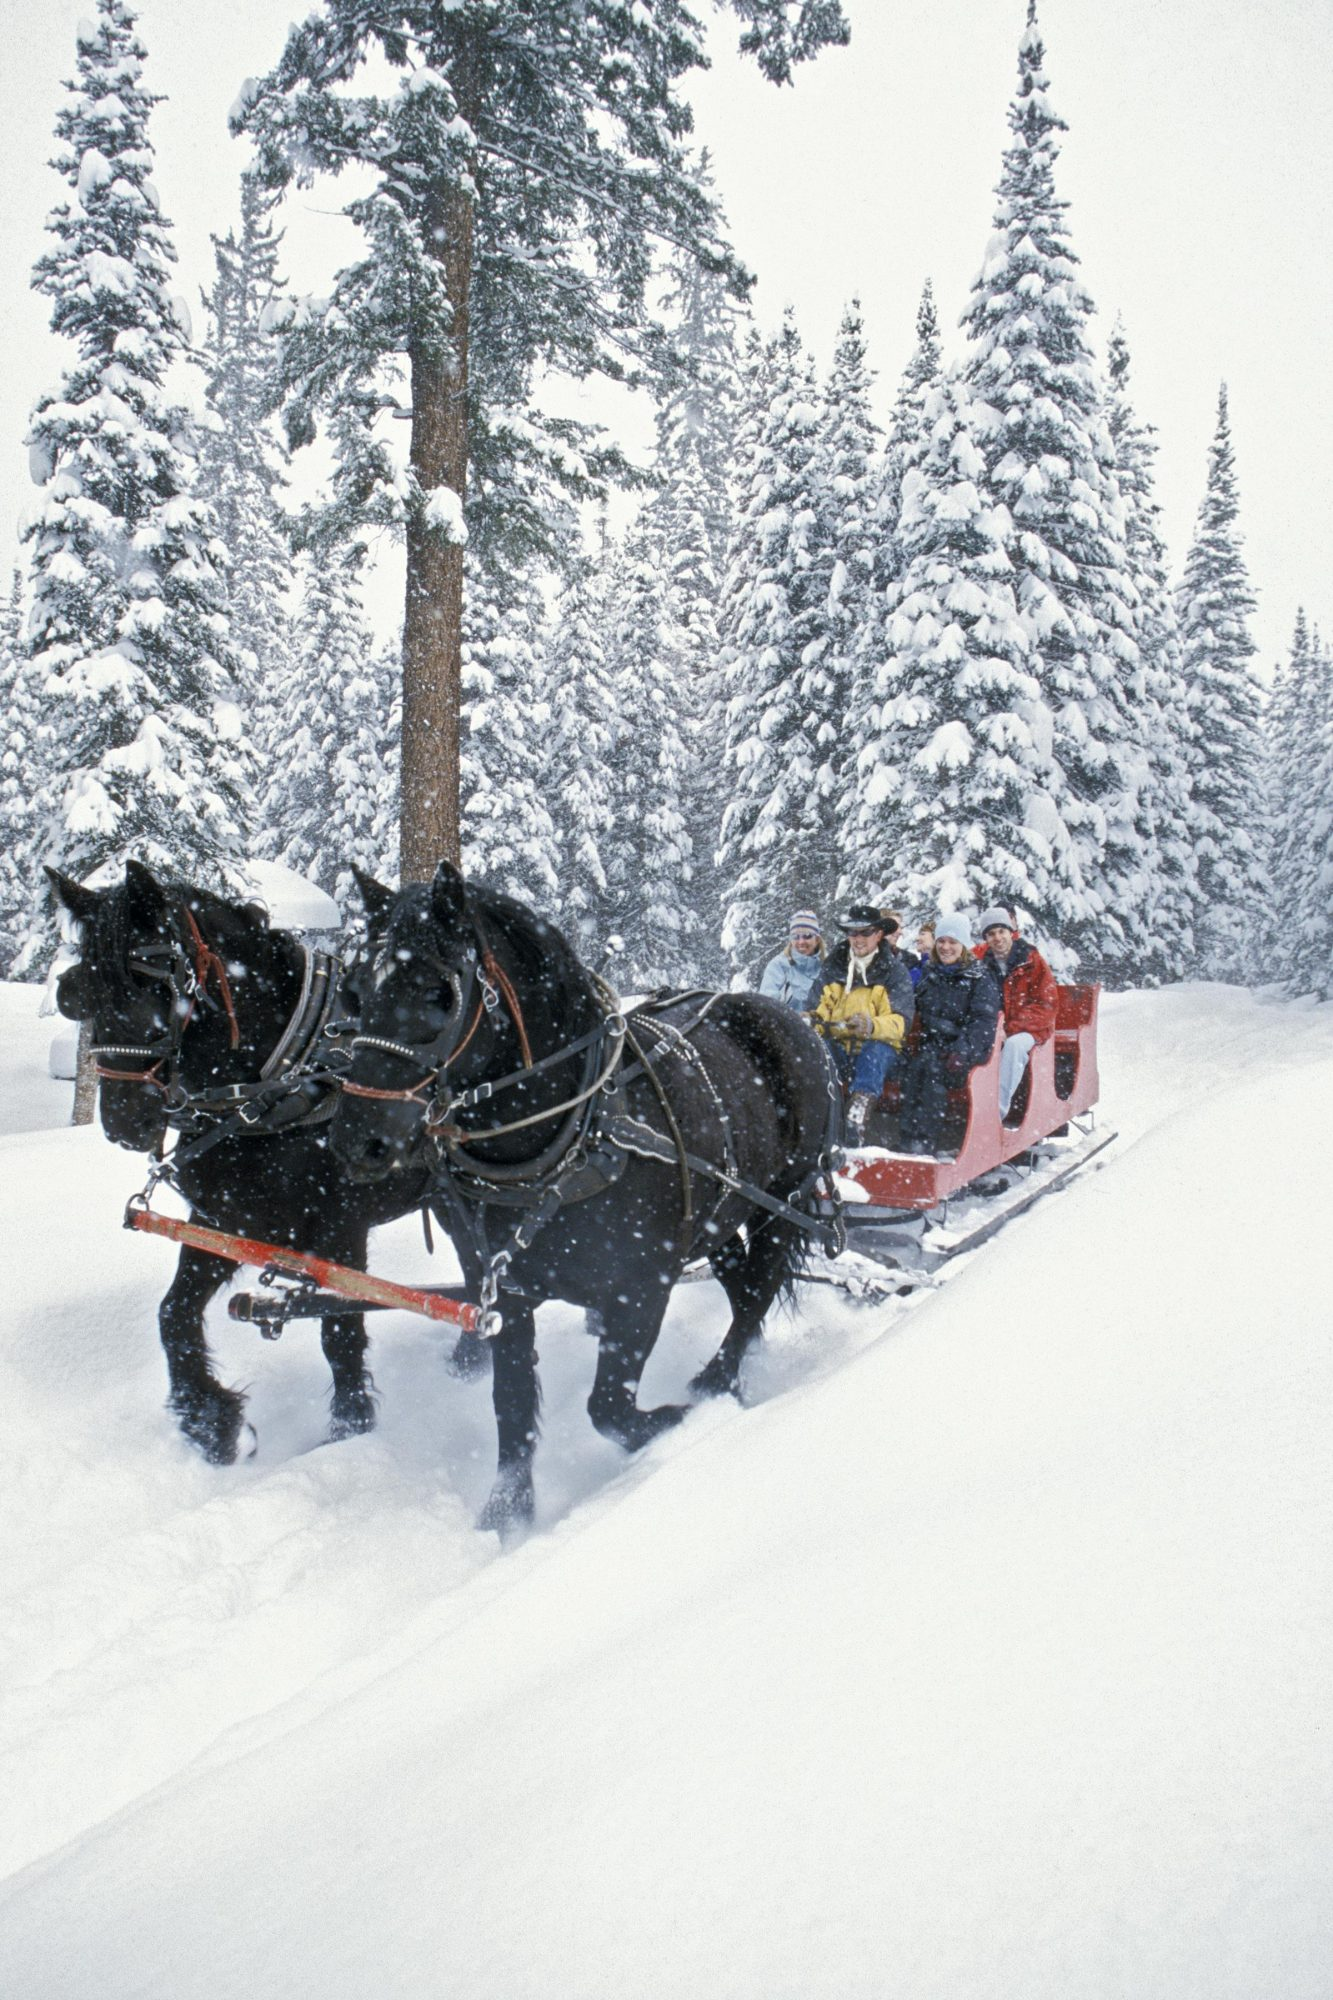 horses pulling sleigh in the snow near wooded area